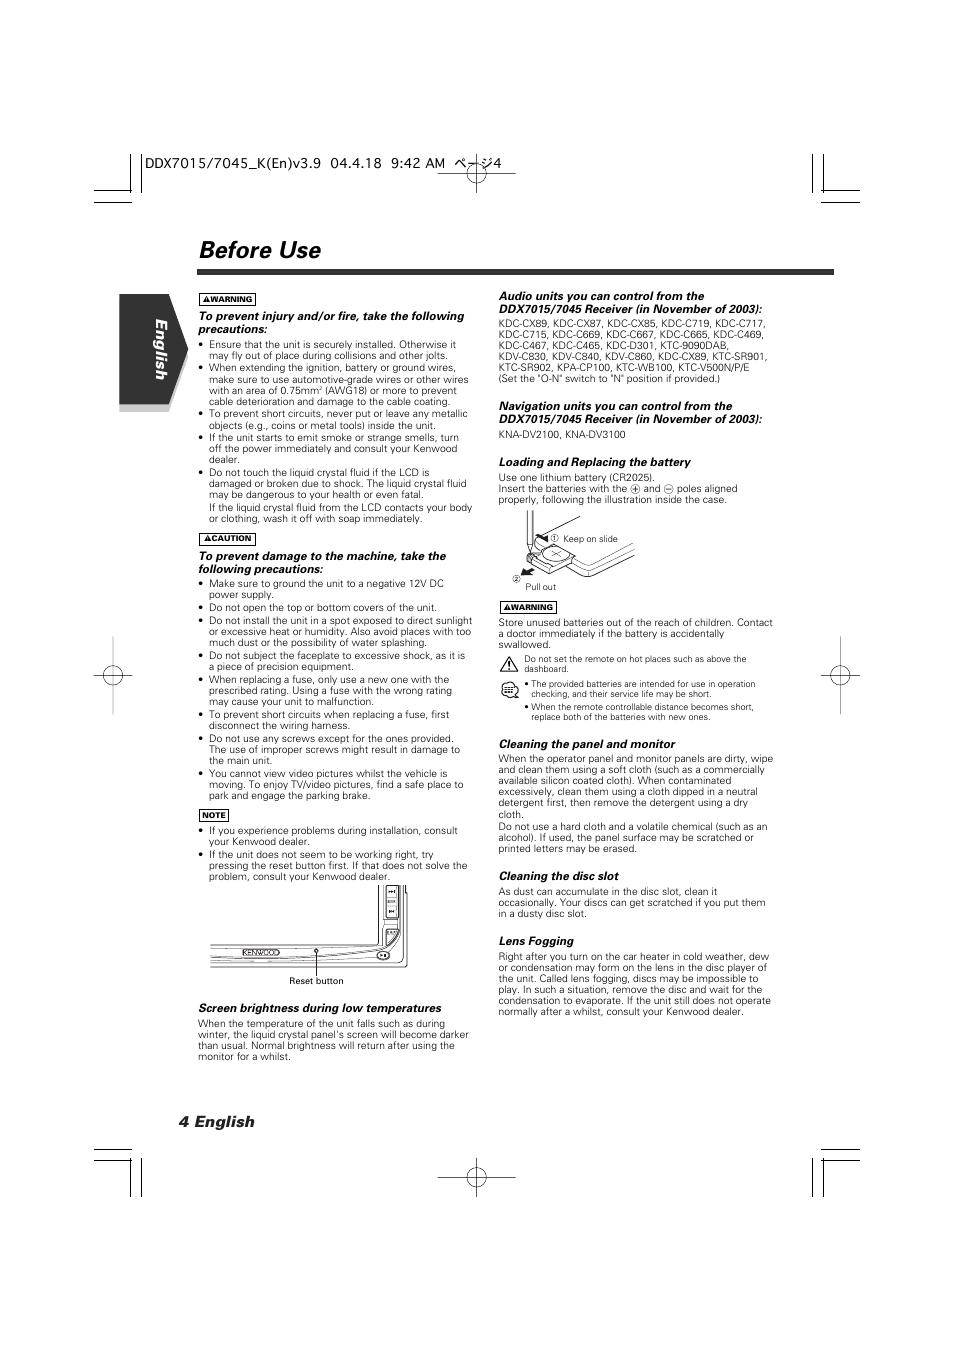 medium resolution of before use 4 english english kenwood excelon ddx7015 user manual page 4